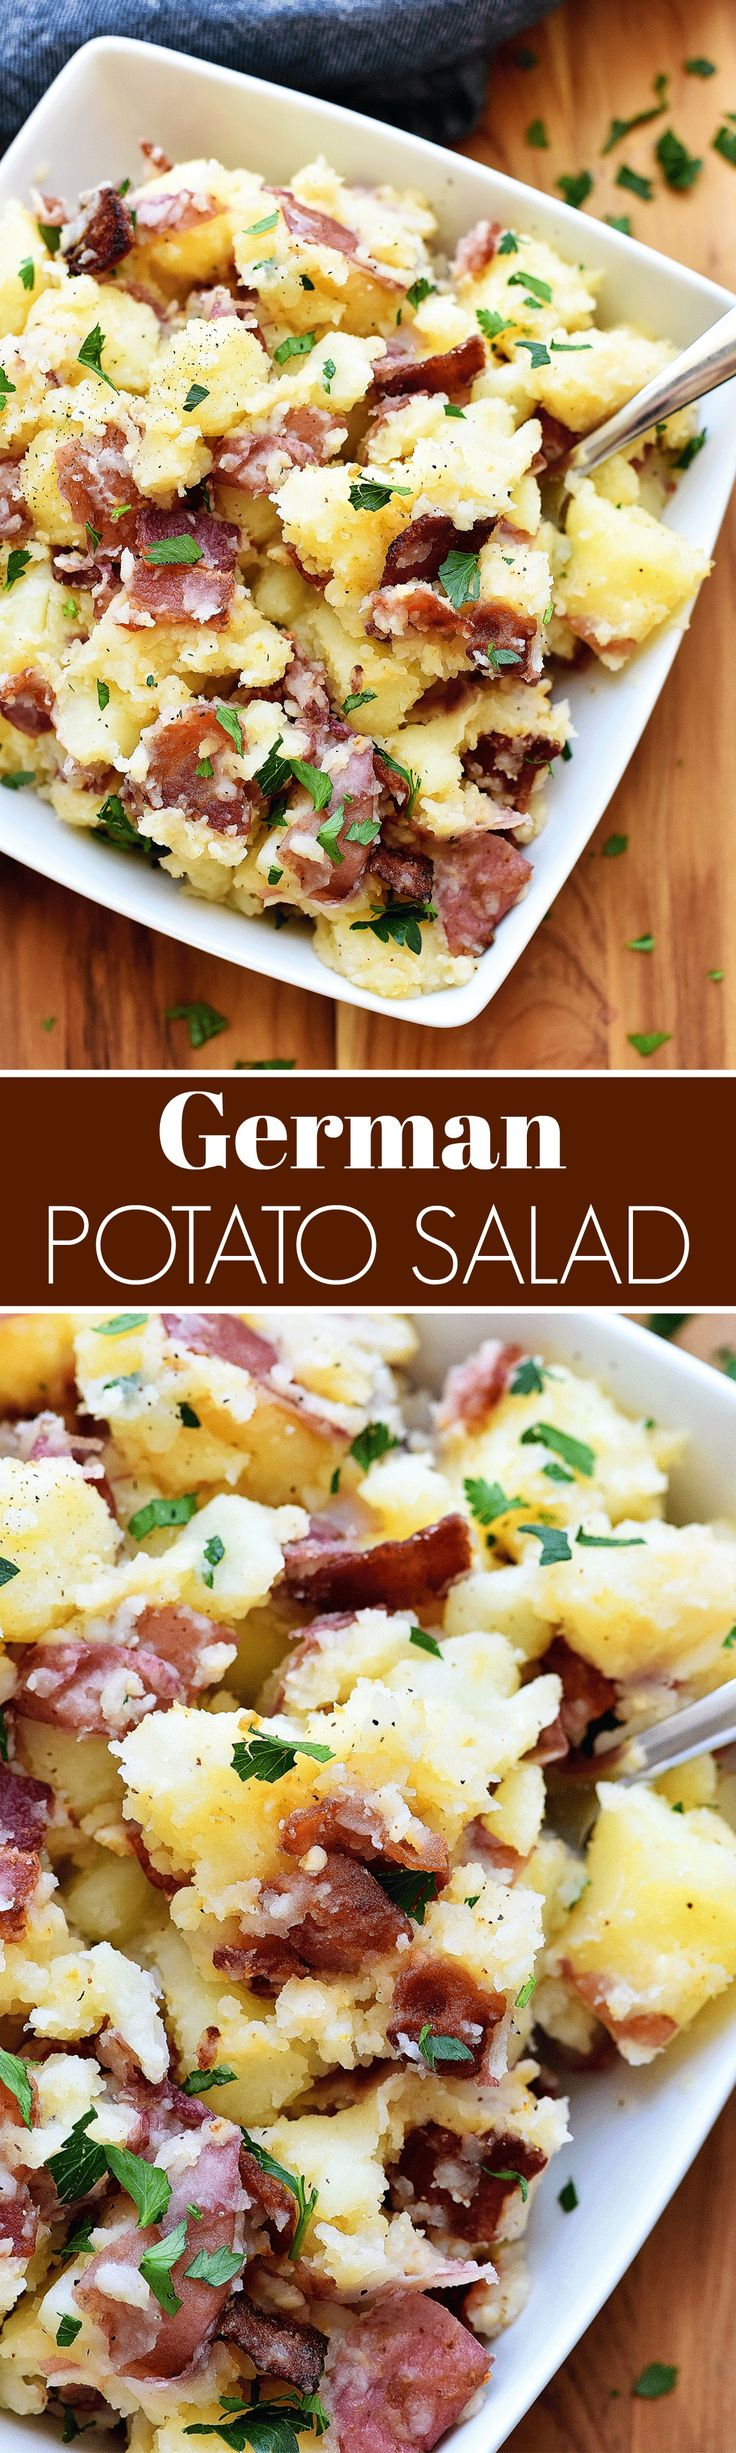 Truth be told- I am NOT a potato salad fan. Potatoes covered in gloopy mayo has never been my thing. My hubby loves it though, weirdo. Bless his heart. haha. JK. For some reason when I was planning our 4th of July menu I thought a potato salad would go good with what I had...Read More »